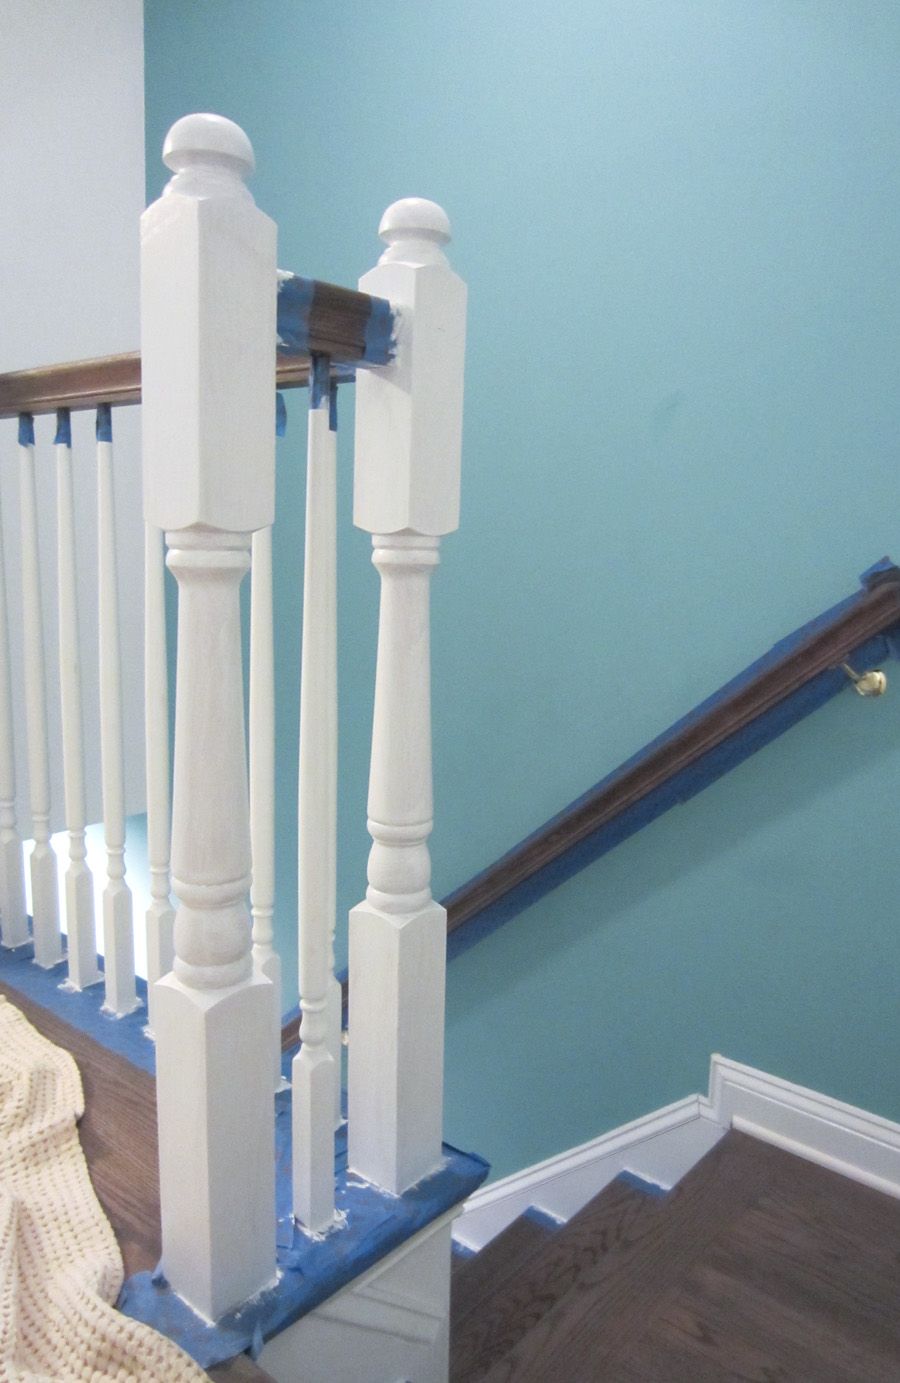 I applied 3 coats of white semi-gloss paint to the stairwell posts